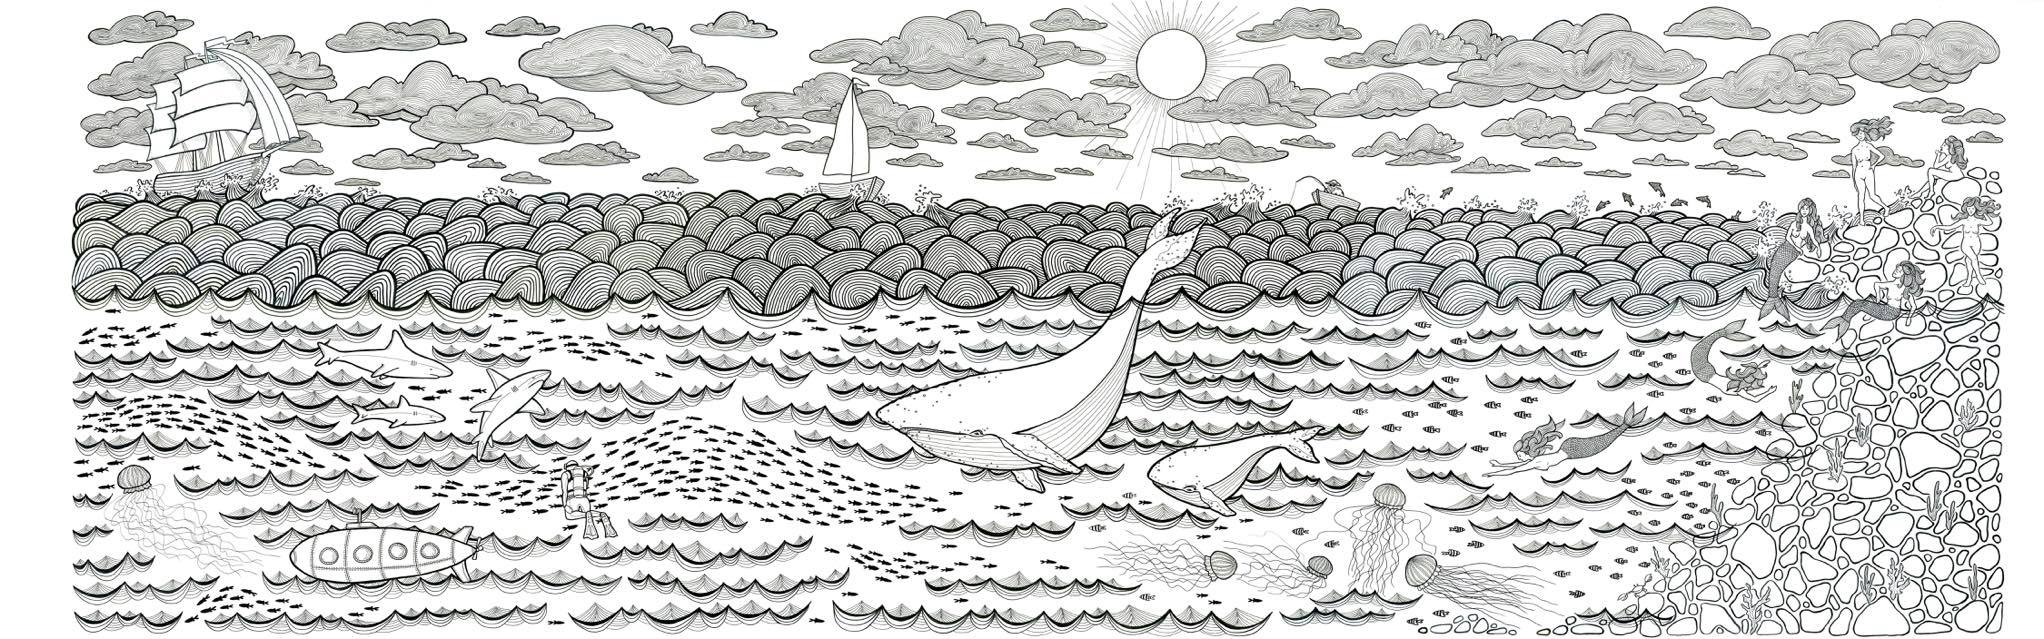 """The Adventure"" 3.5'x10.5'  Pen and ink on paper $1500 unframed"